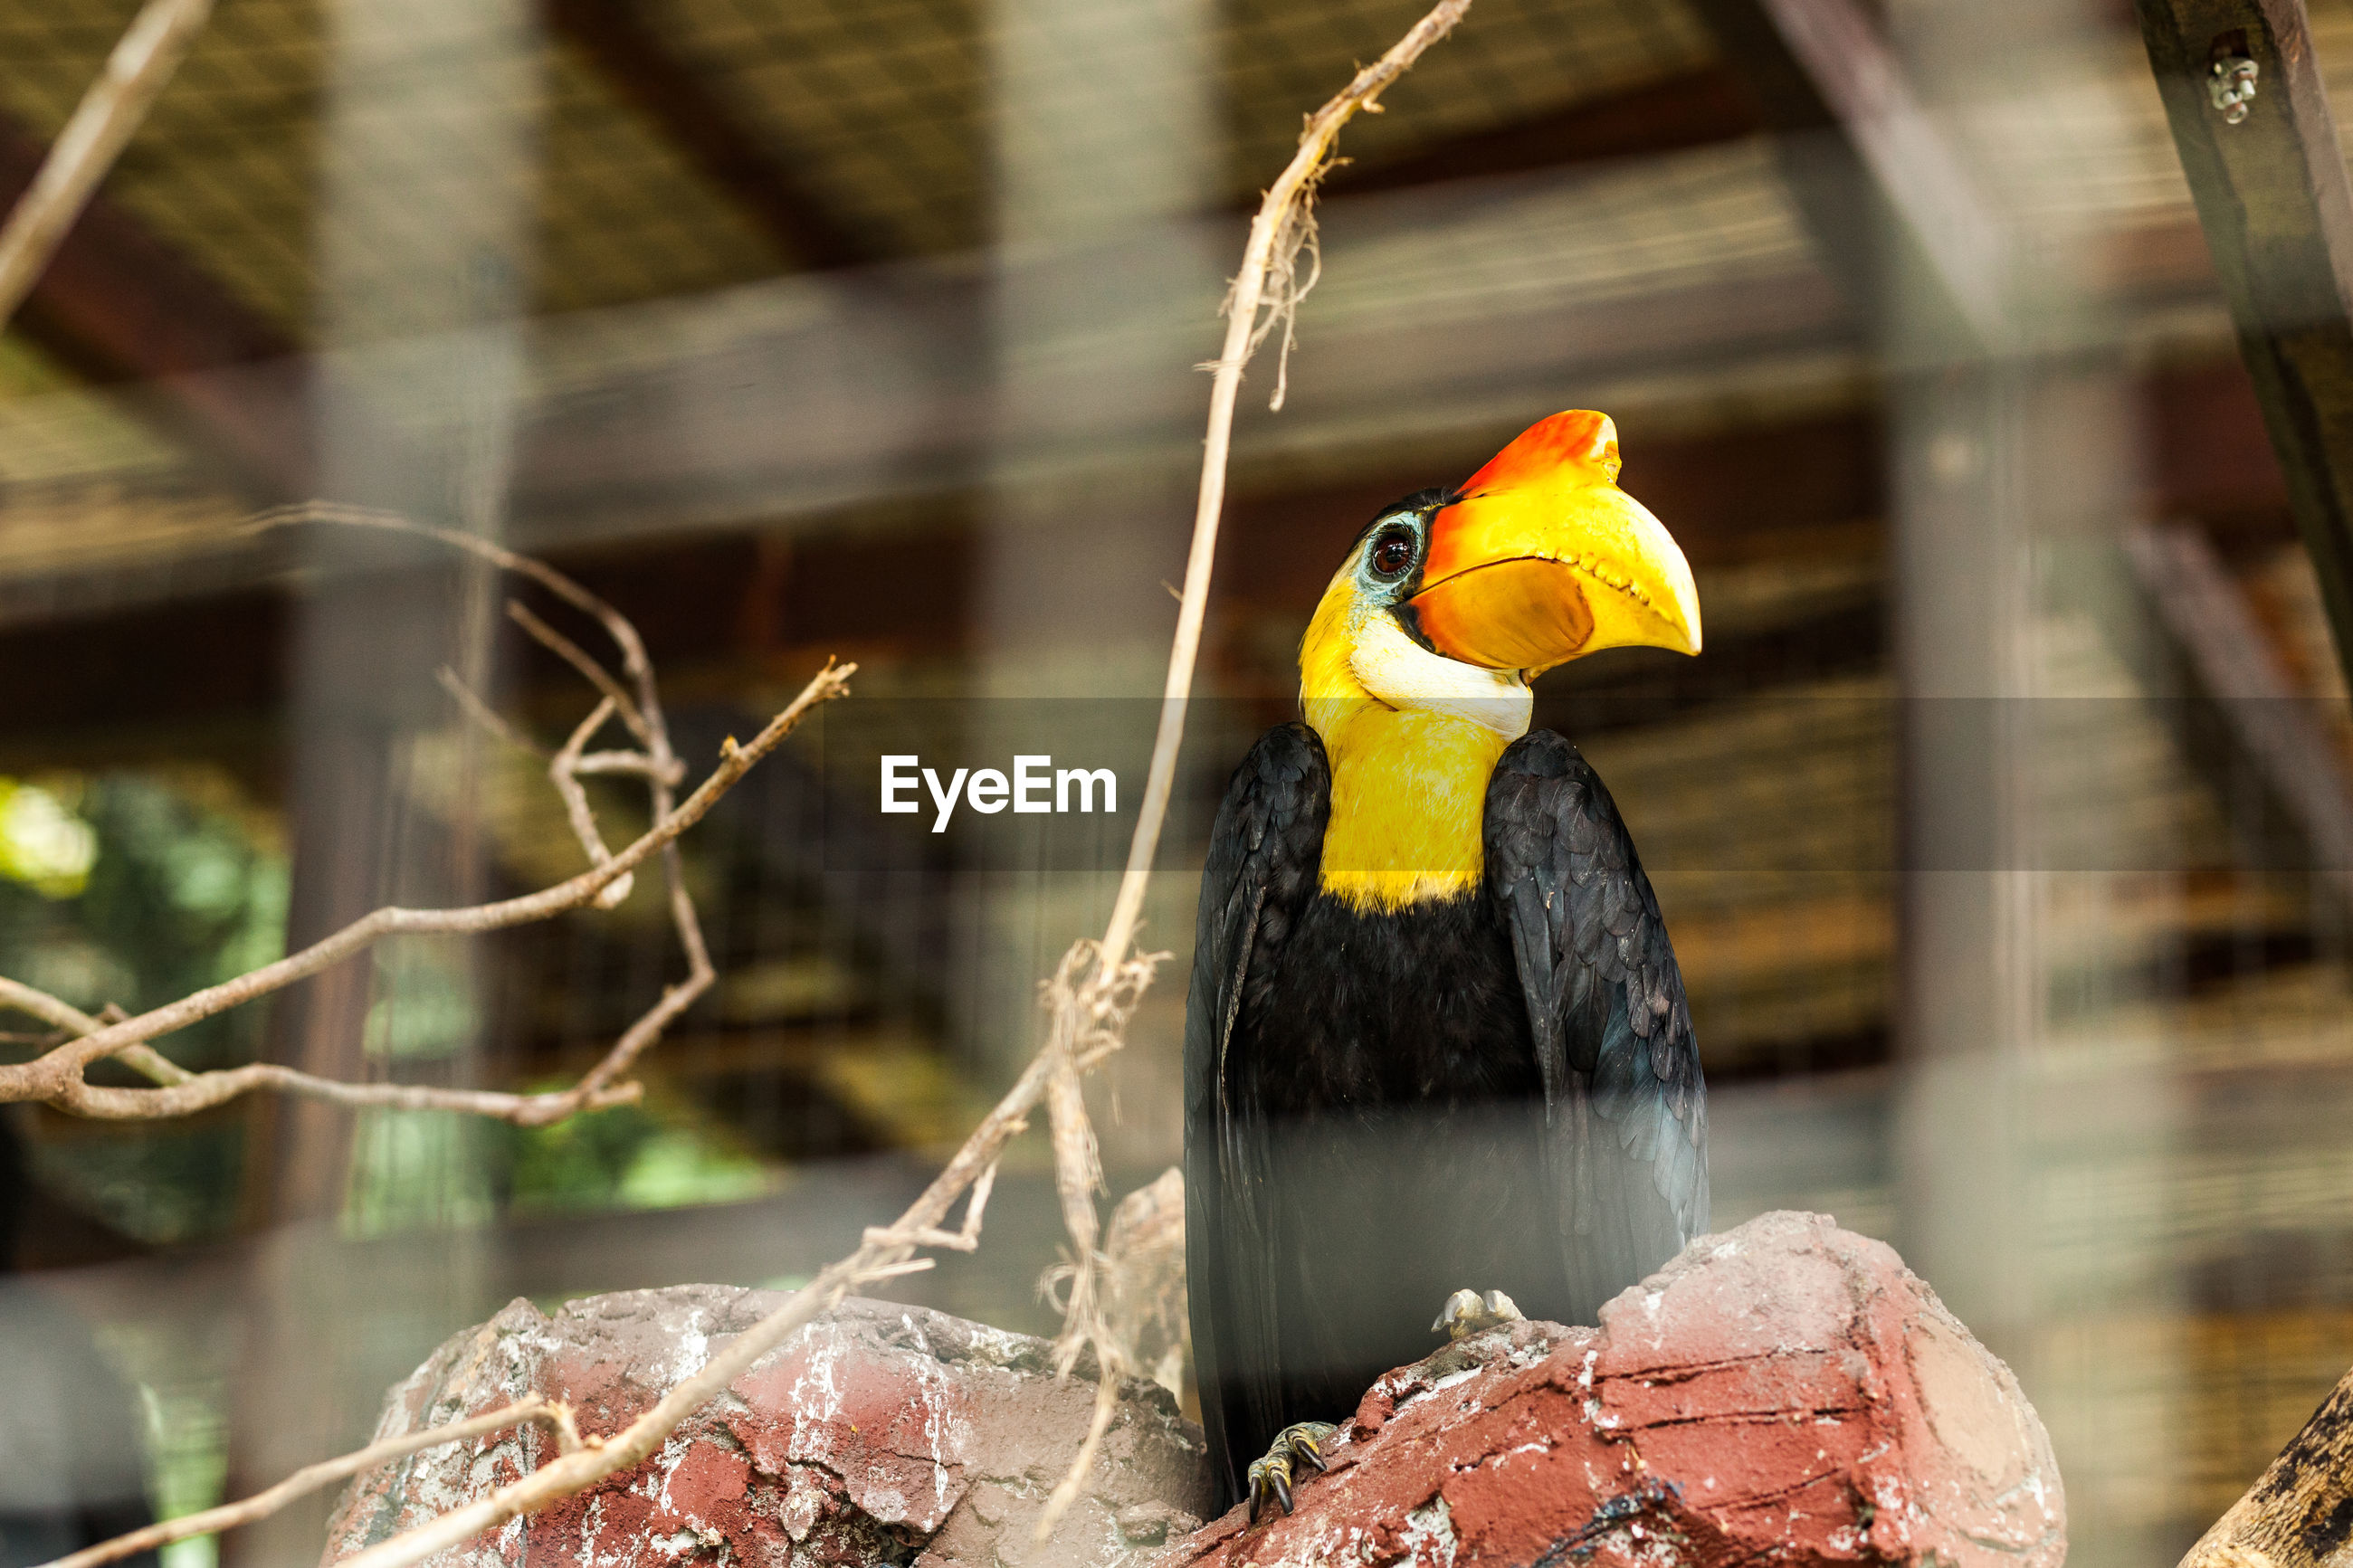 CLOSE-UP OF BIRD PERCHING IN CAGE AT ZOO